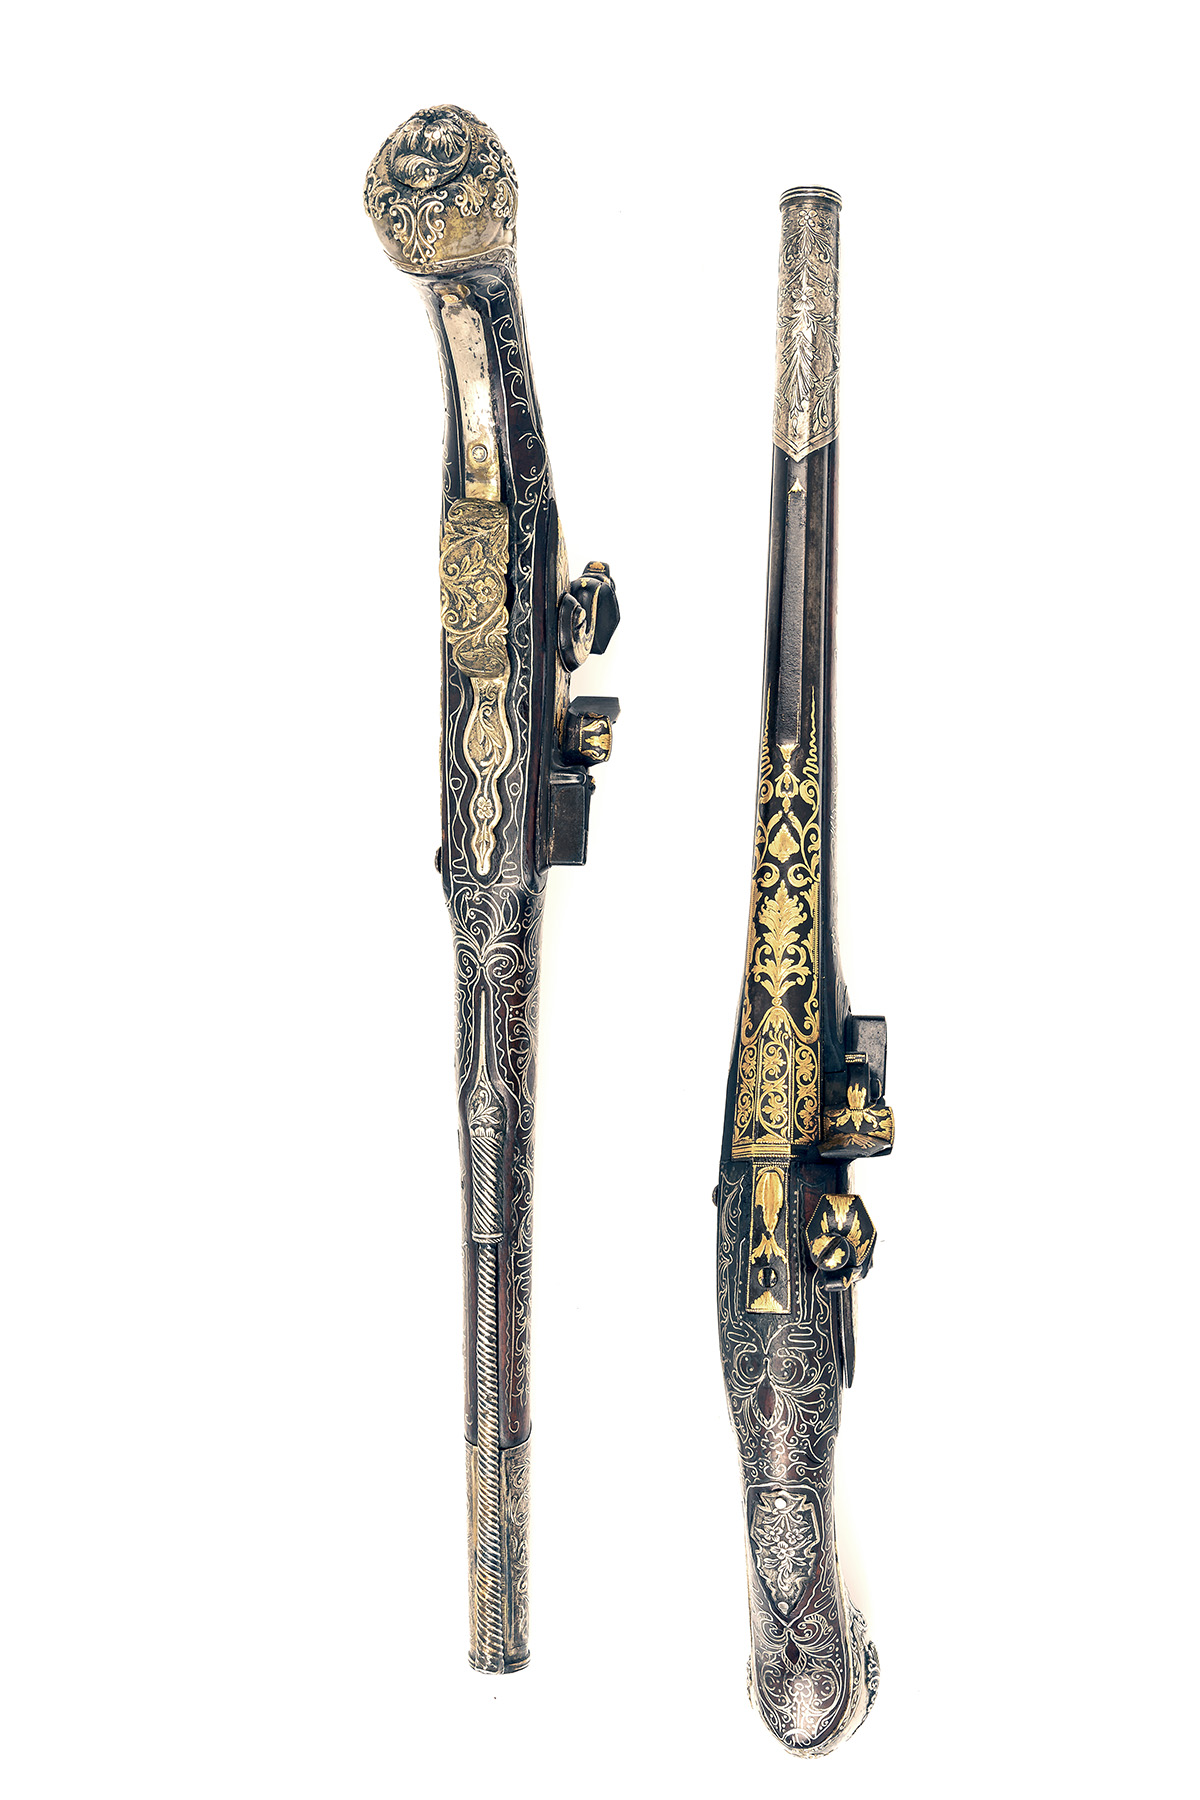 A GOOD PAIR OF 20-BORE FLINTLOCK OTTOMAN HOLSTER-PISTOLS WITH GILT DECORATION, UNSIGNED, no - Image 3 of 10